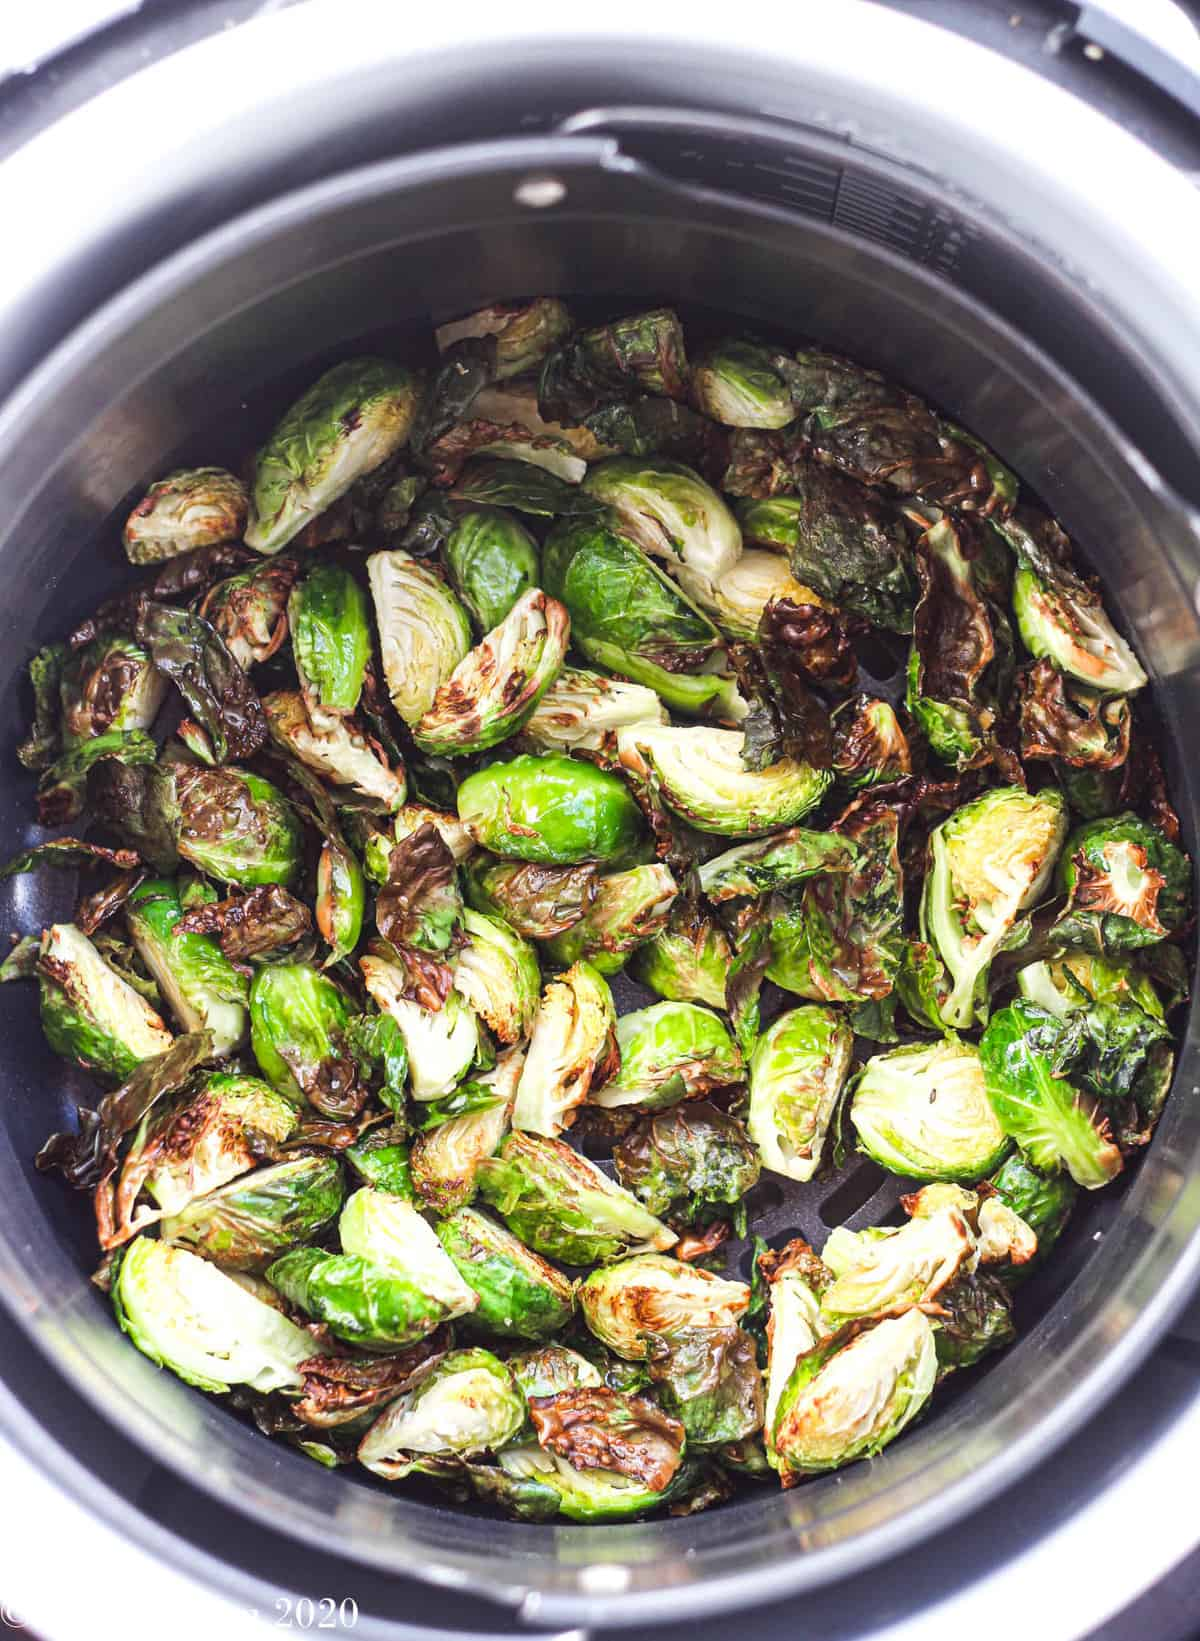 The brussels sprouts in the air fryer halfway through cooking